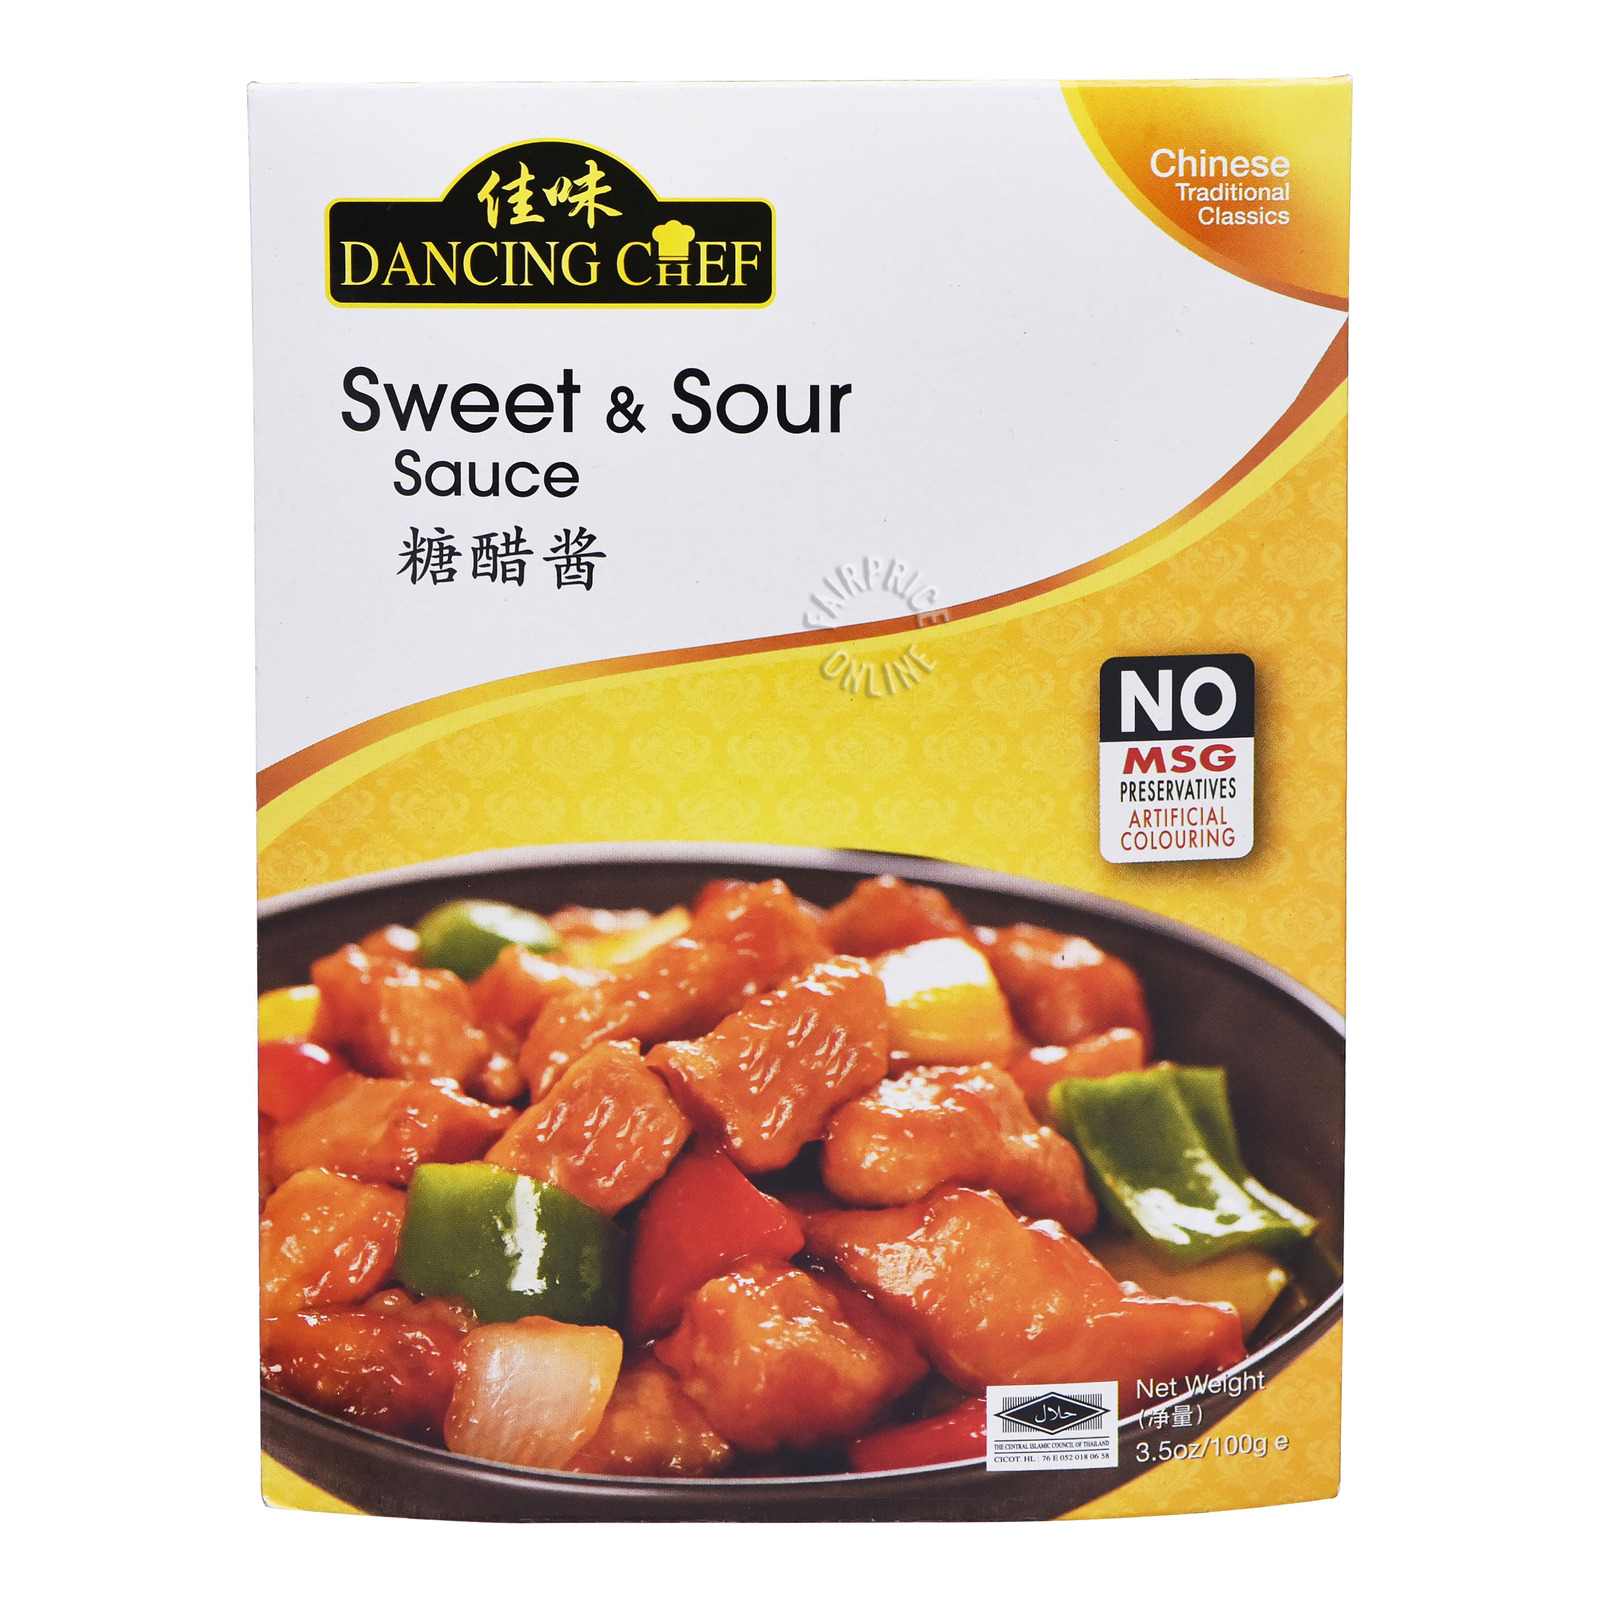 Dancing Chef Sauce - Sweet & Sour